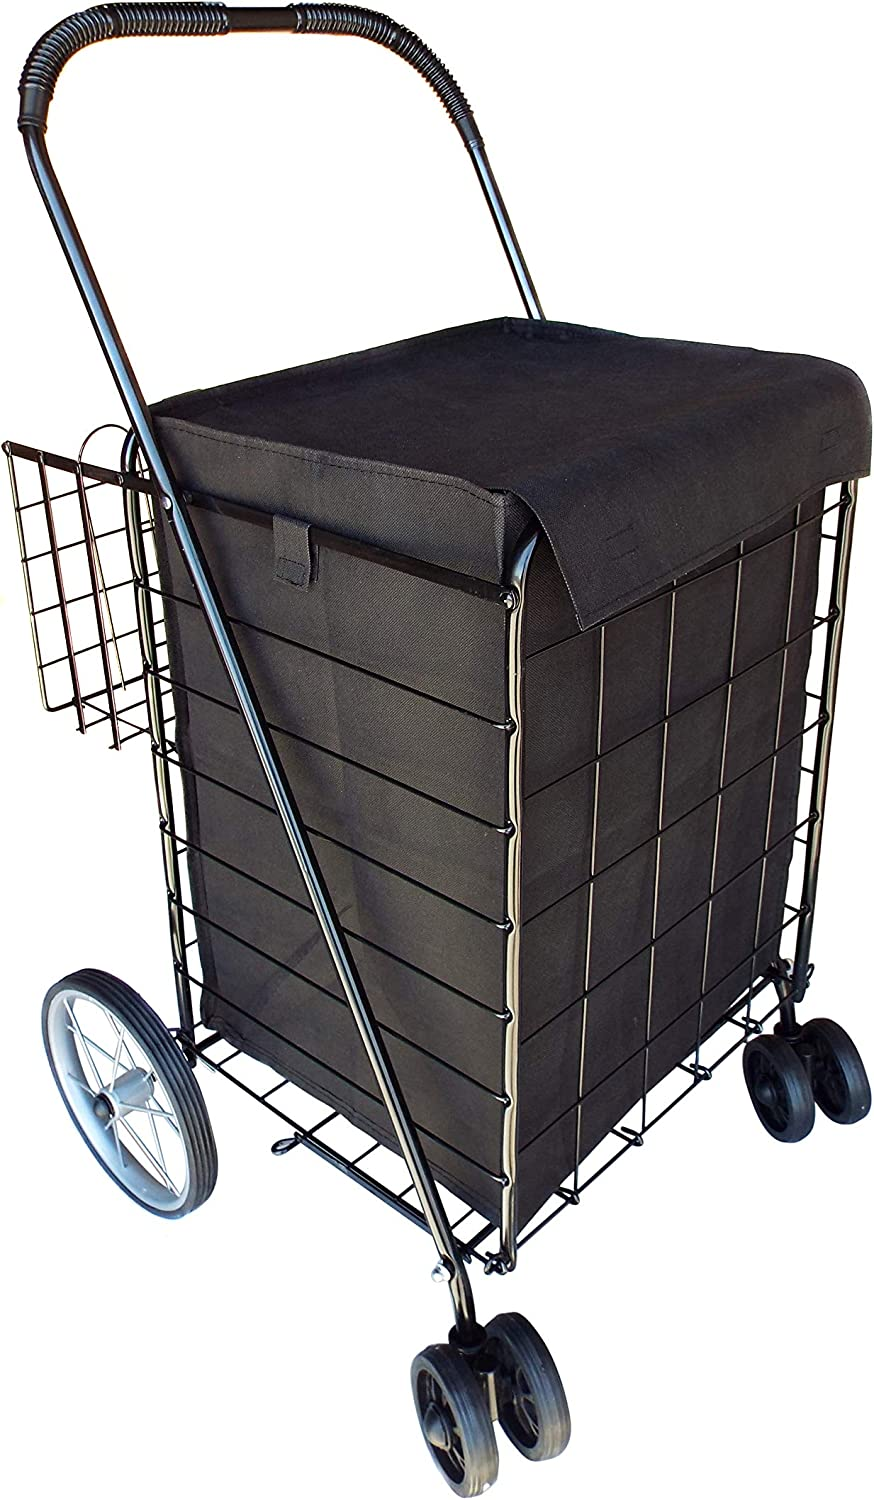 Portable Double Basket Heavy-Duty Folding Shopping Cart w Front Swivel Wheels, and Steel Back Wheels – Fits in Trunk OR Back Seat – Never Make Two Grocery Trips Again – Black with Liner